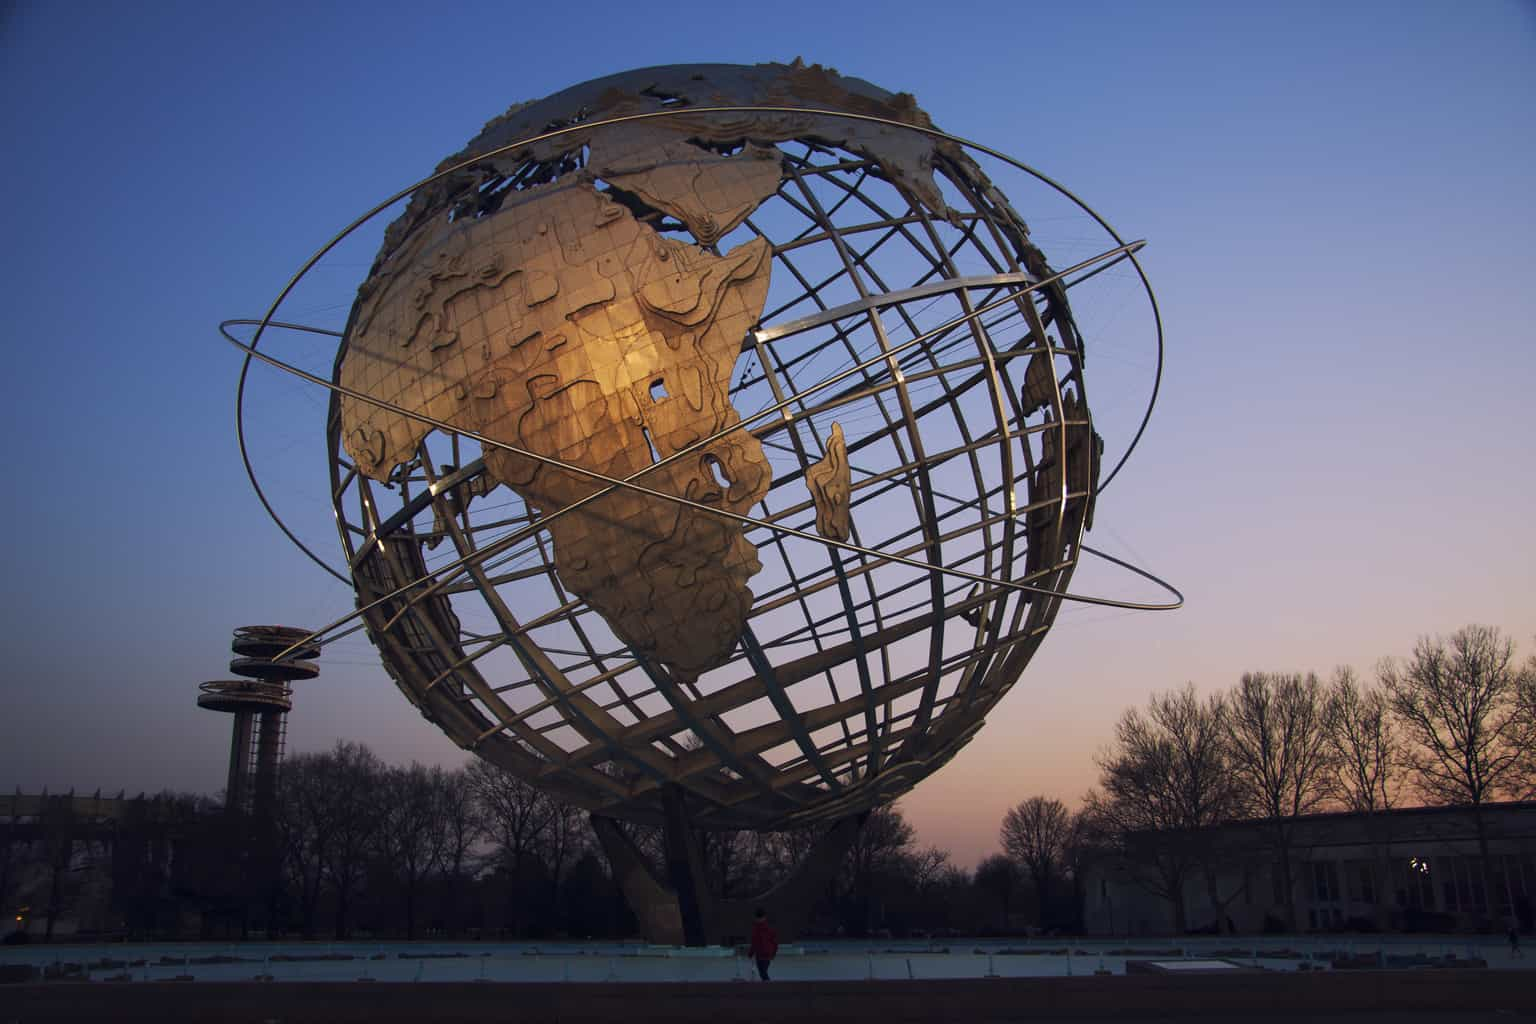 Flushing Meadow Park should be on everyone's NYC bucket list.